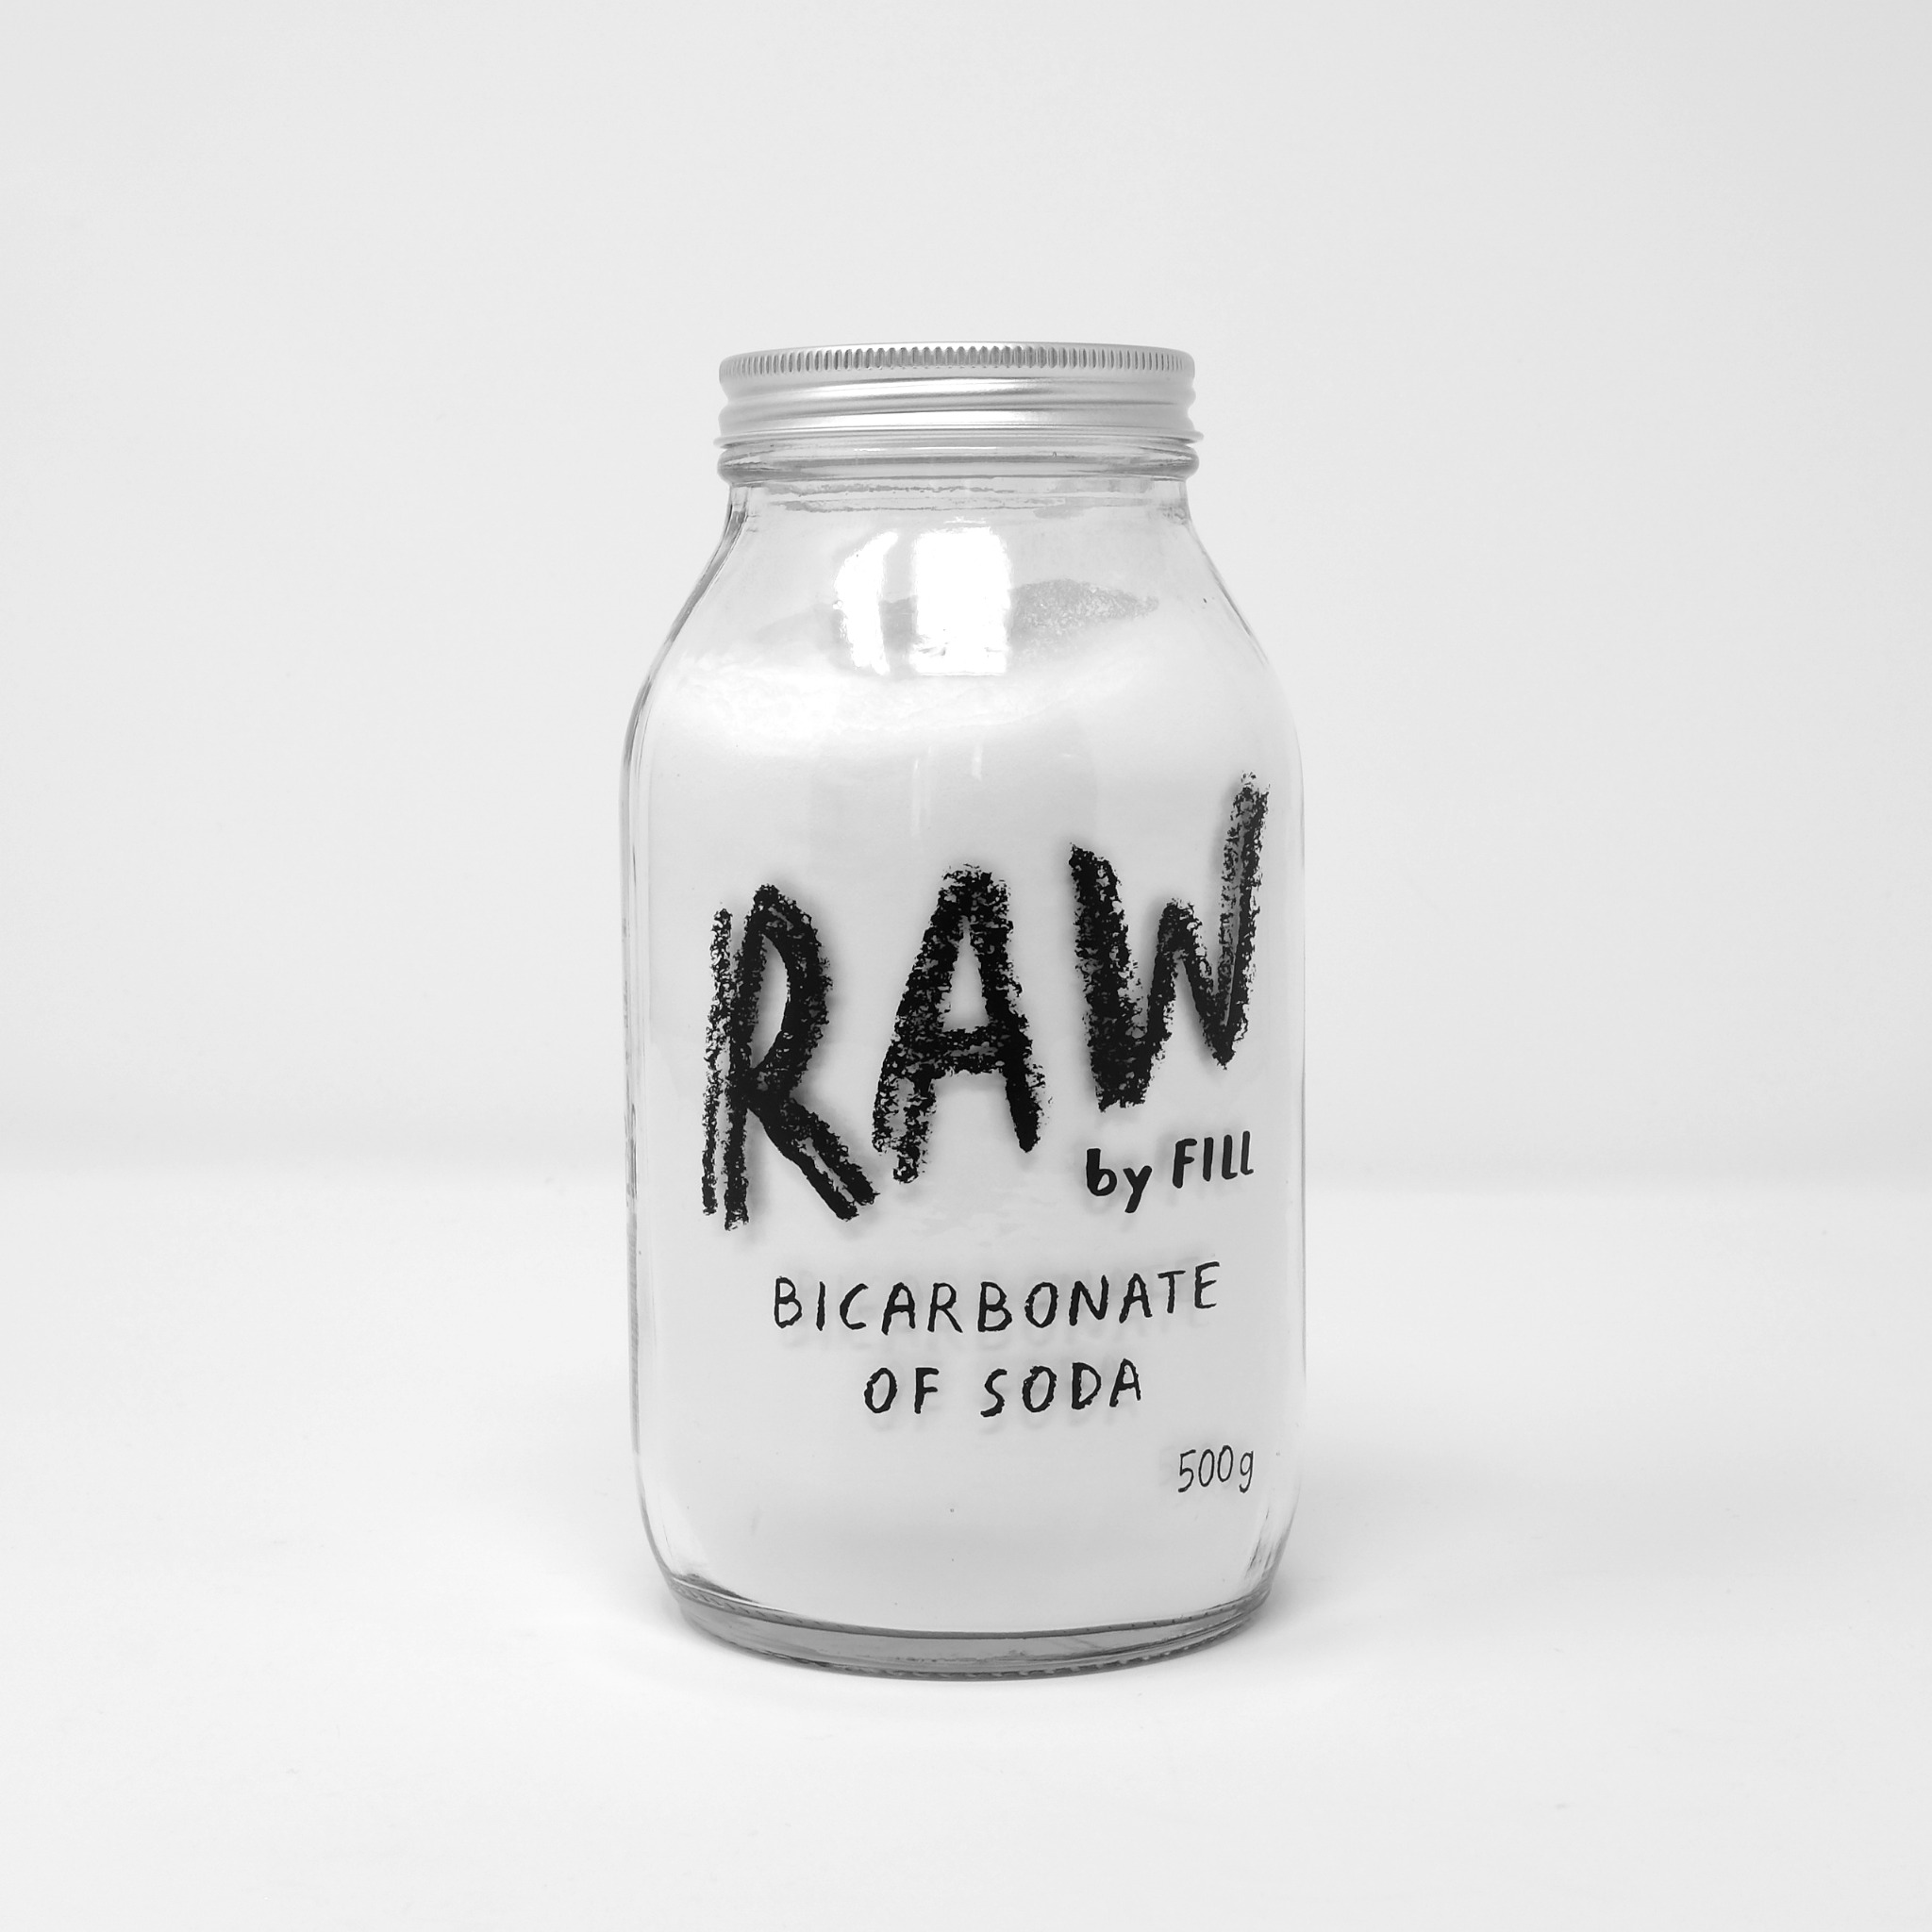 Raw ingredients MAKE YOUR OWN